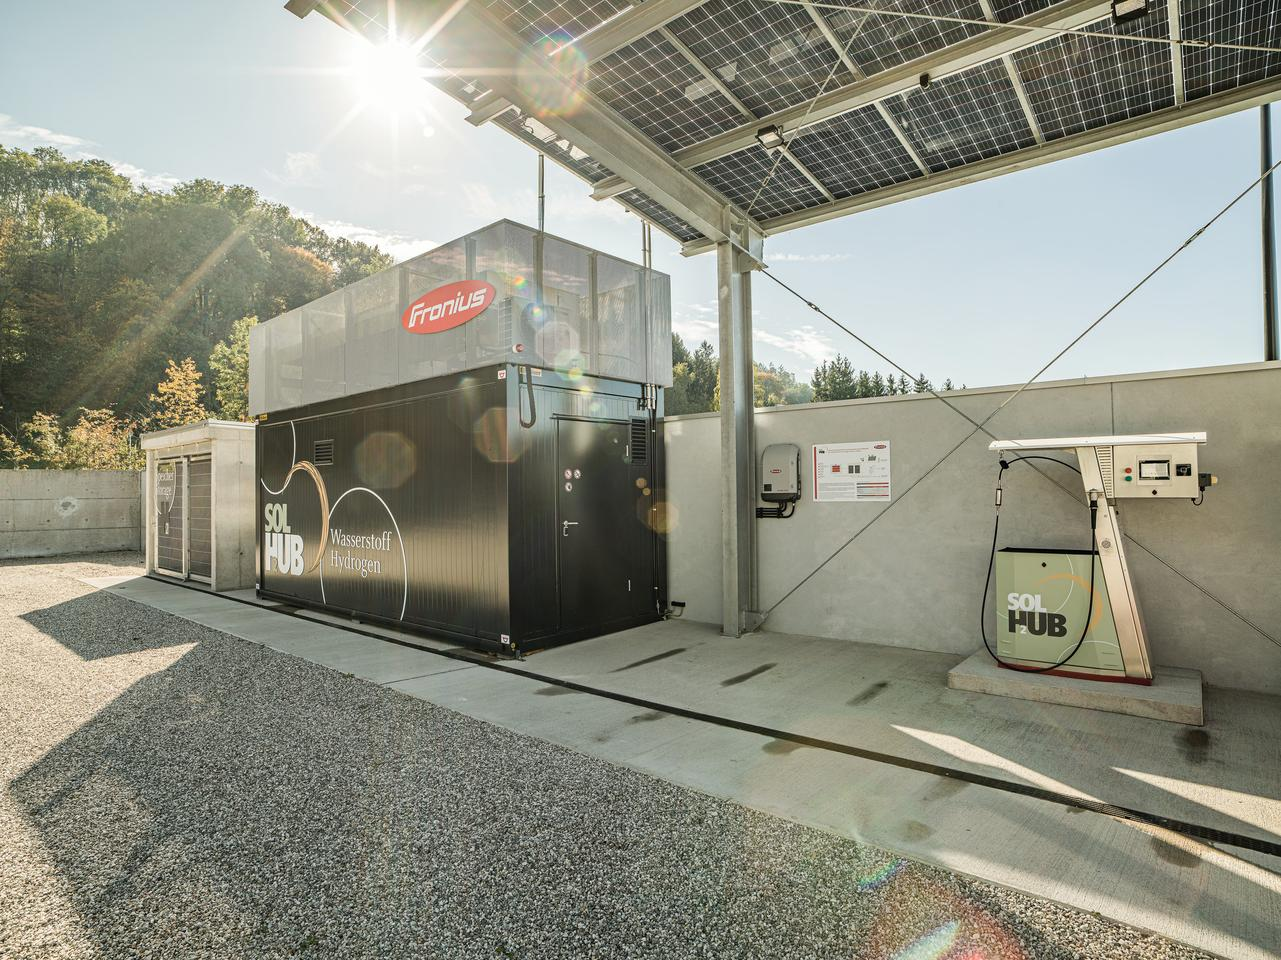 A prototype SolHub unit at Fronius's research and development site